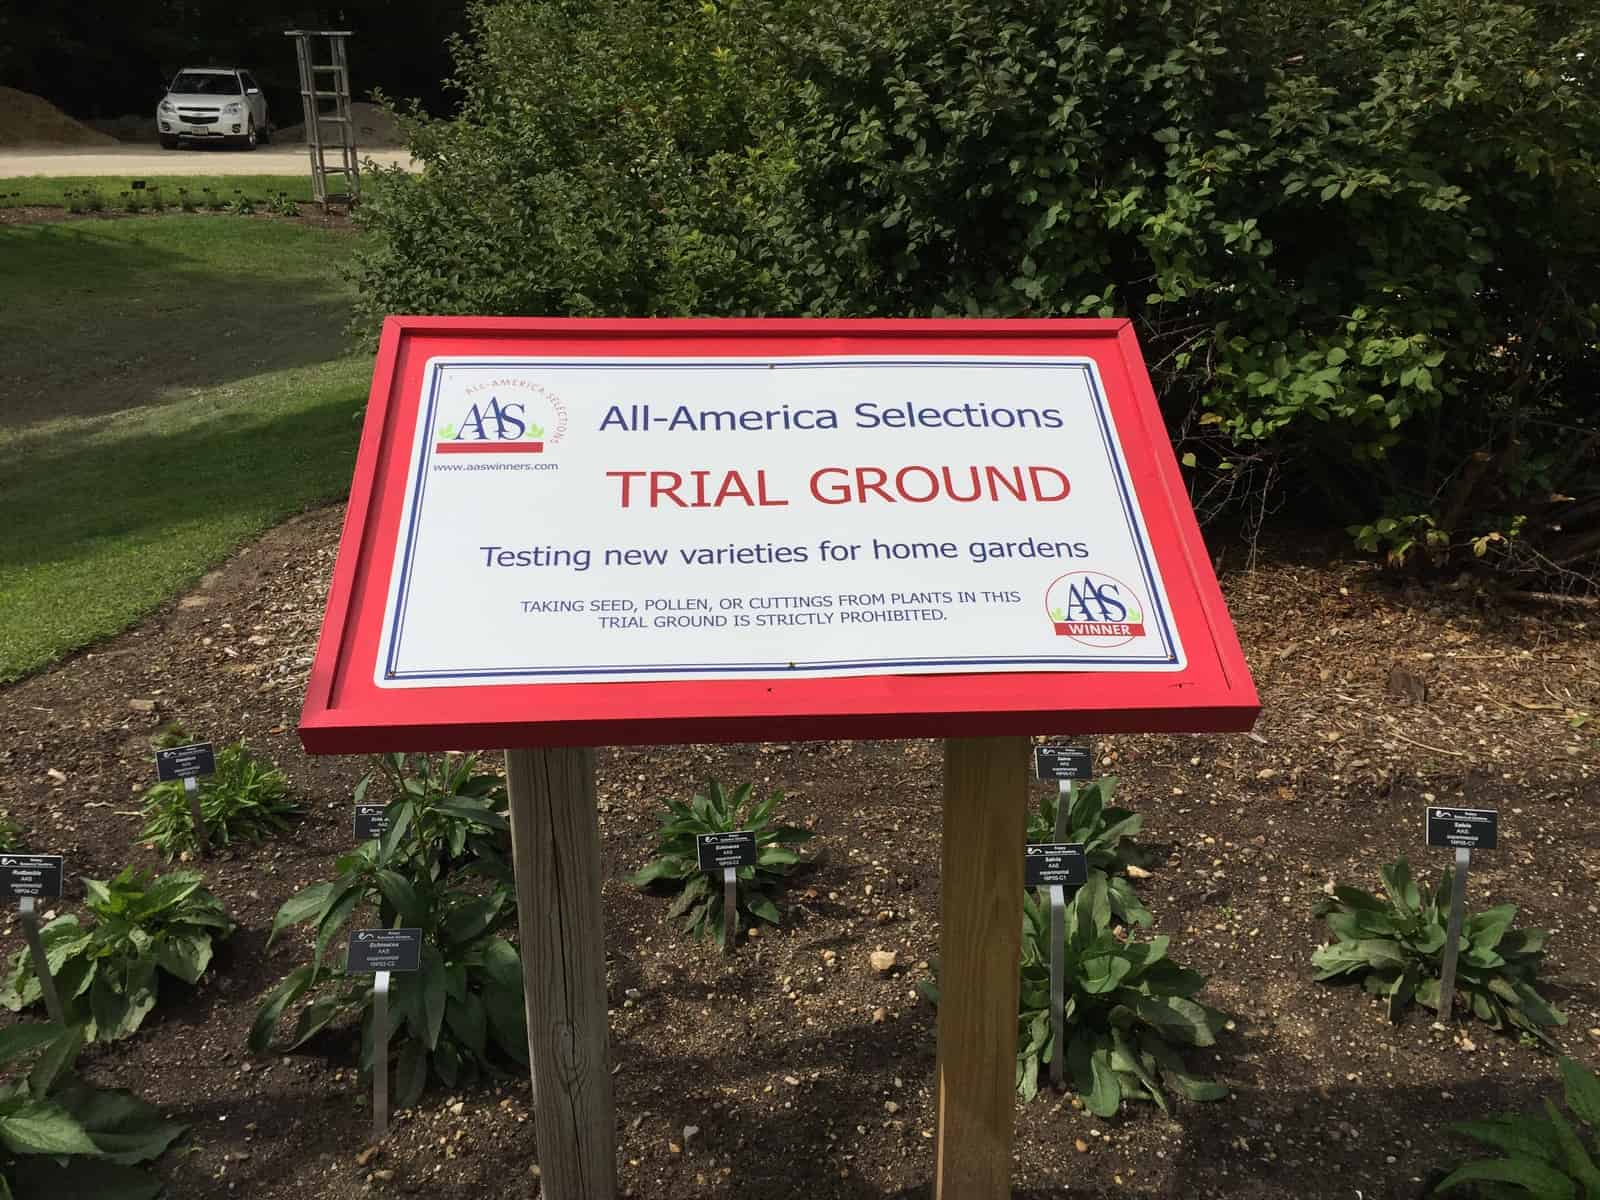 Trial Ground sign at Rotary Botanical Garden